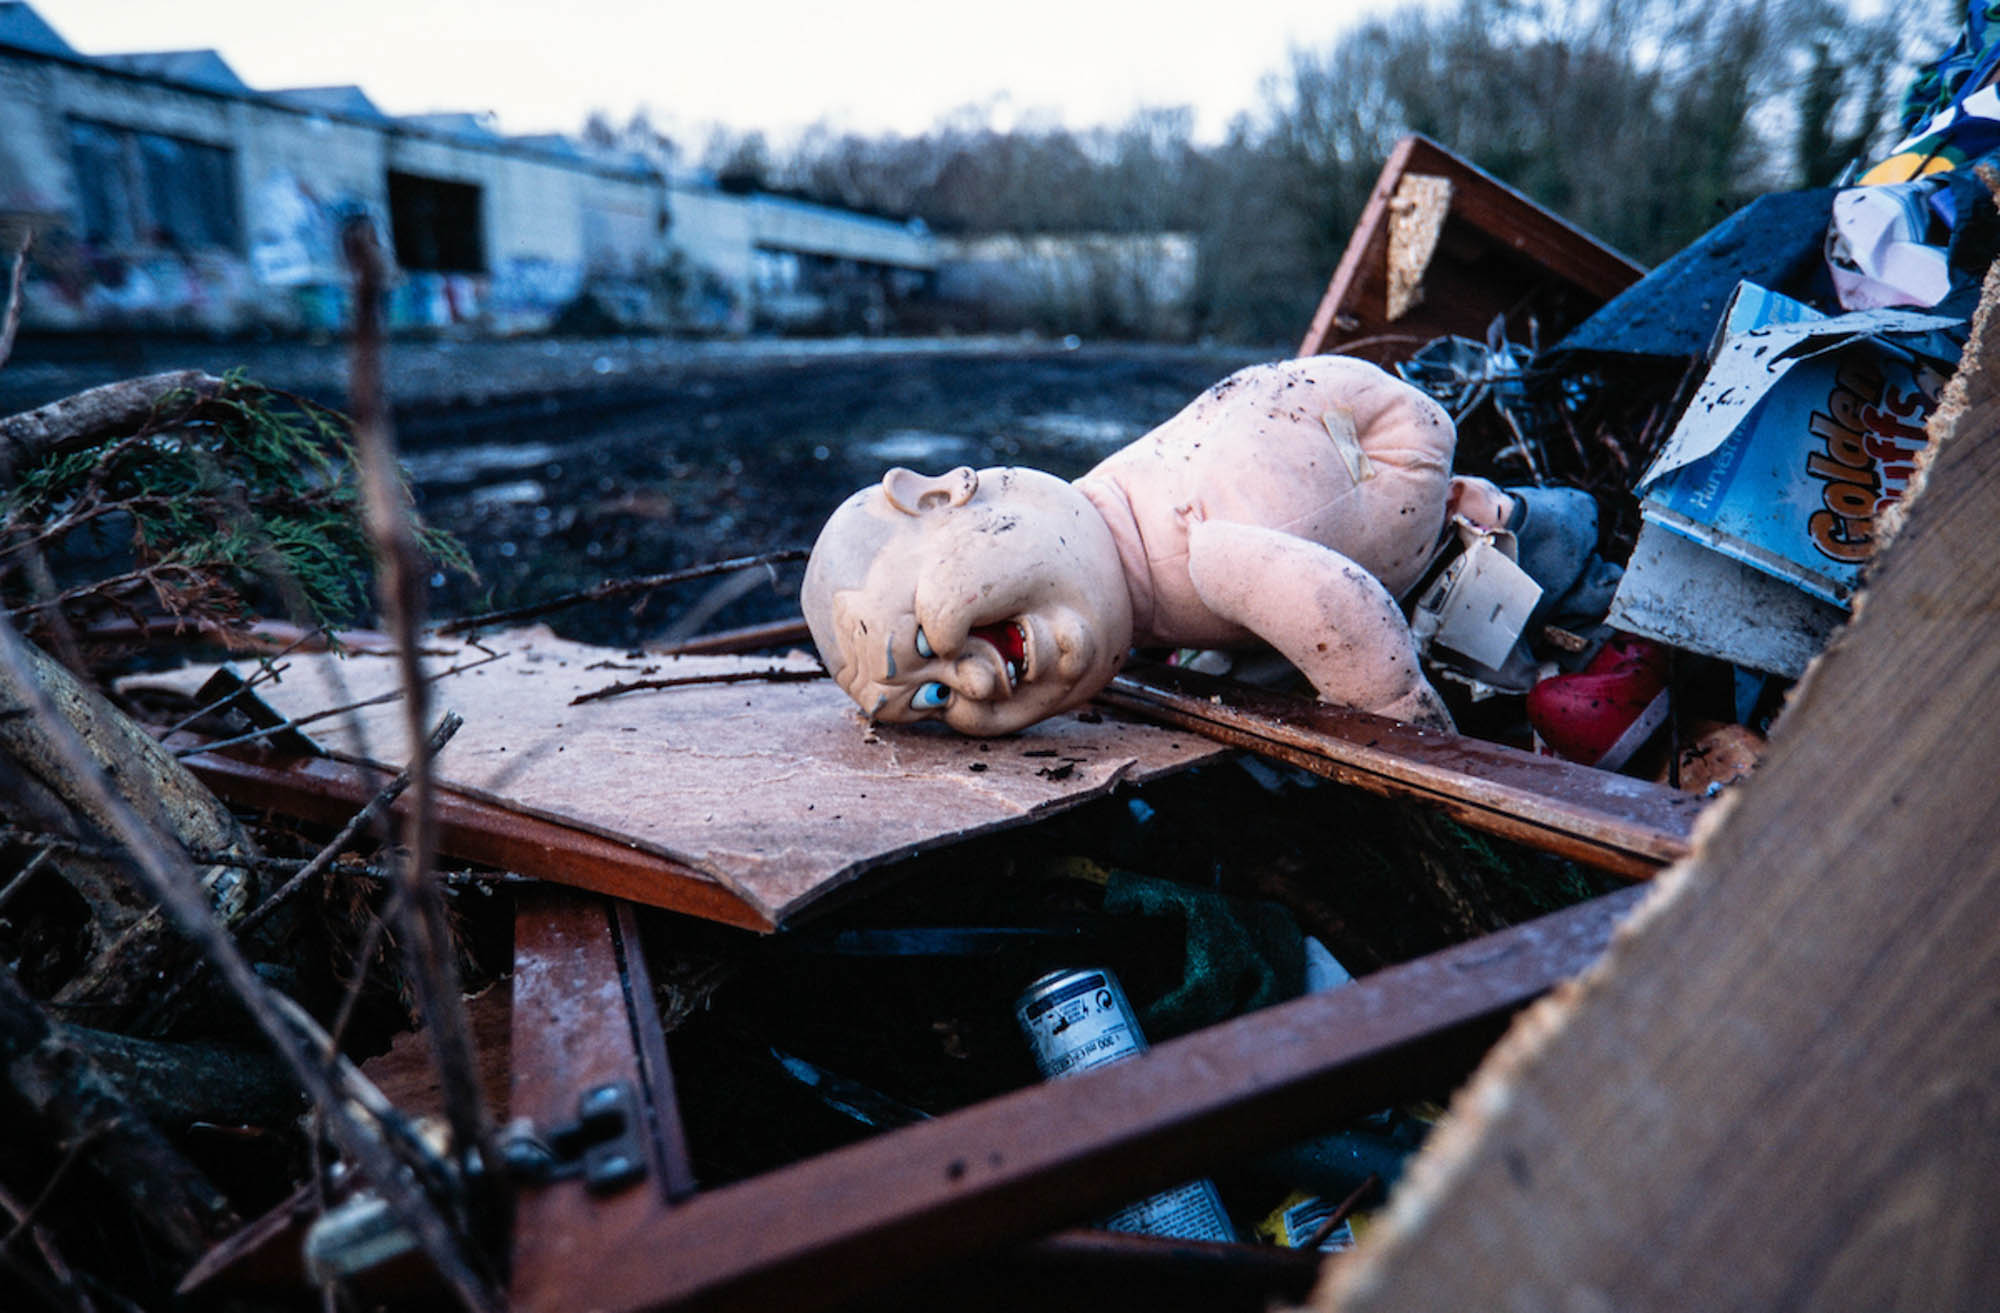 I had never seen this weird doll until contractors started to pile up the rubbish. January 2018, Fujifilm Provia 100F (RDPIII)